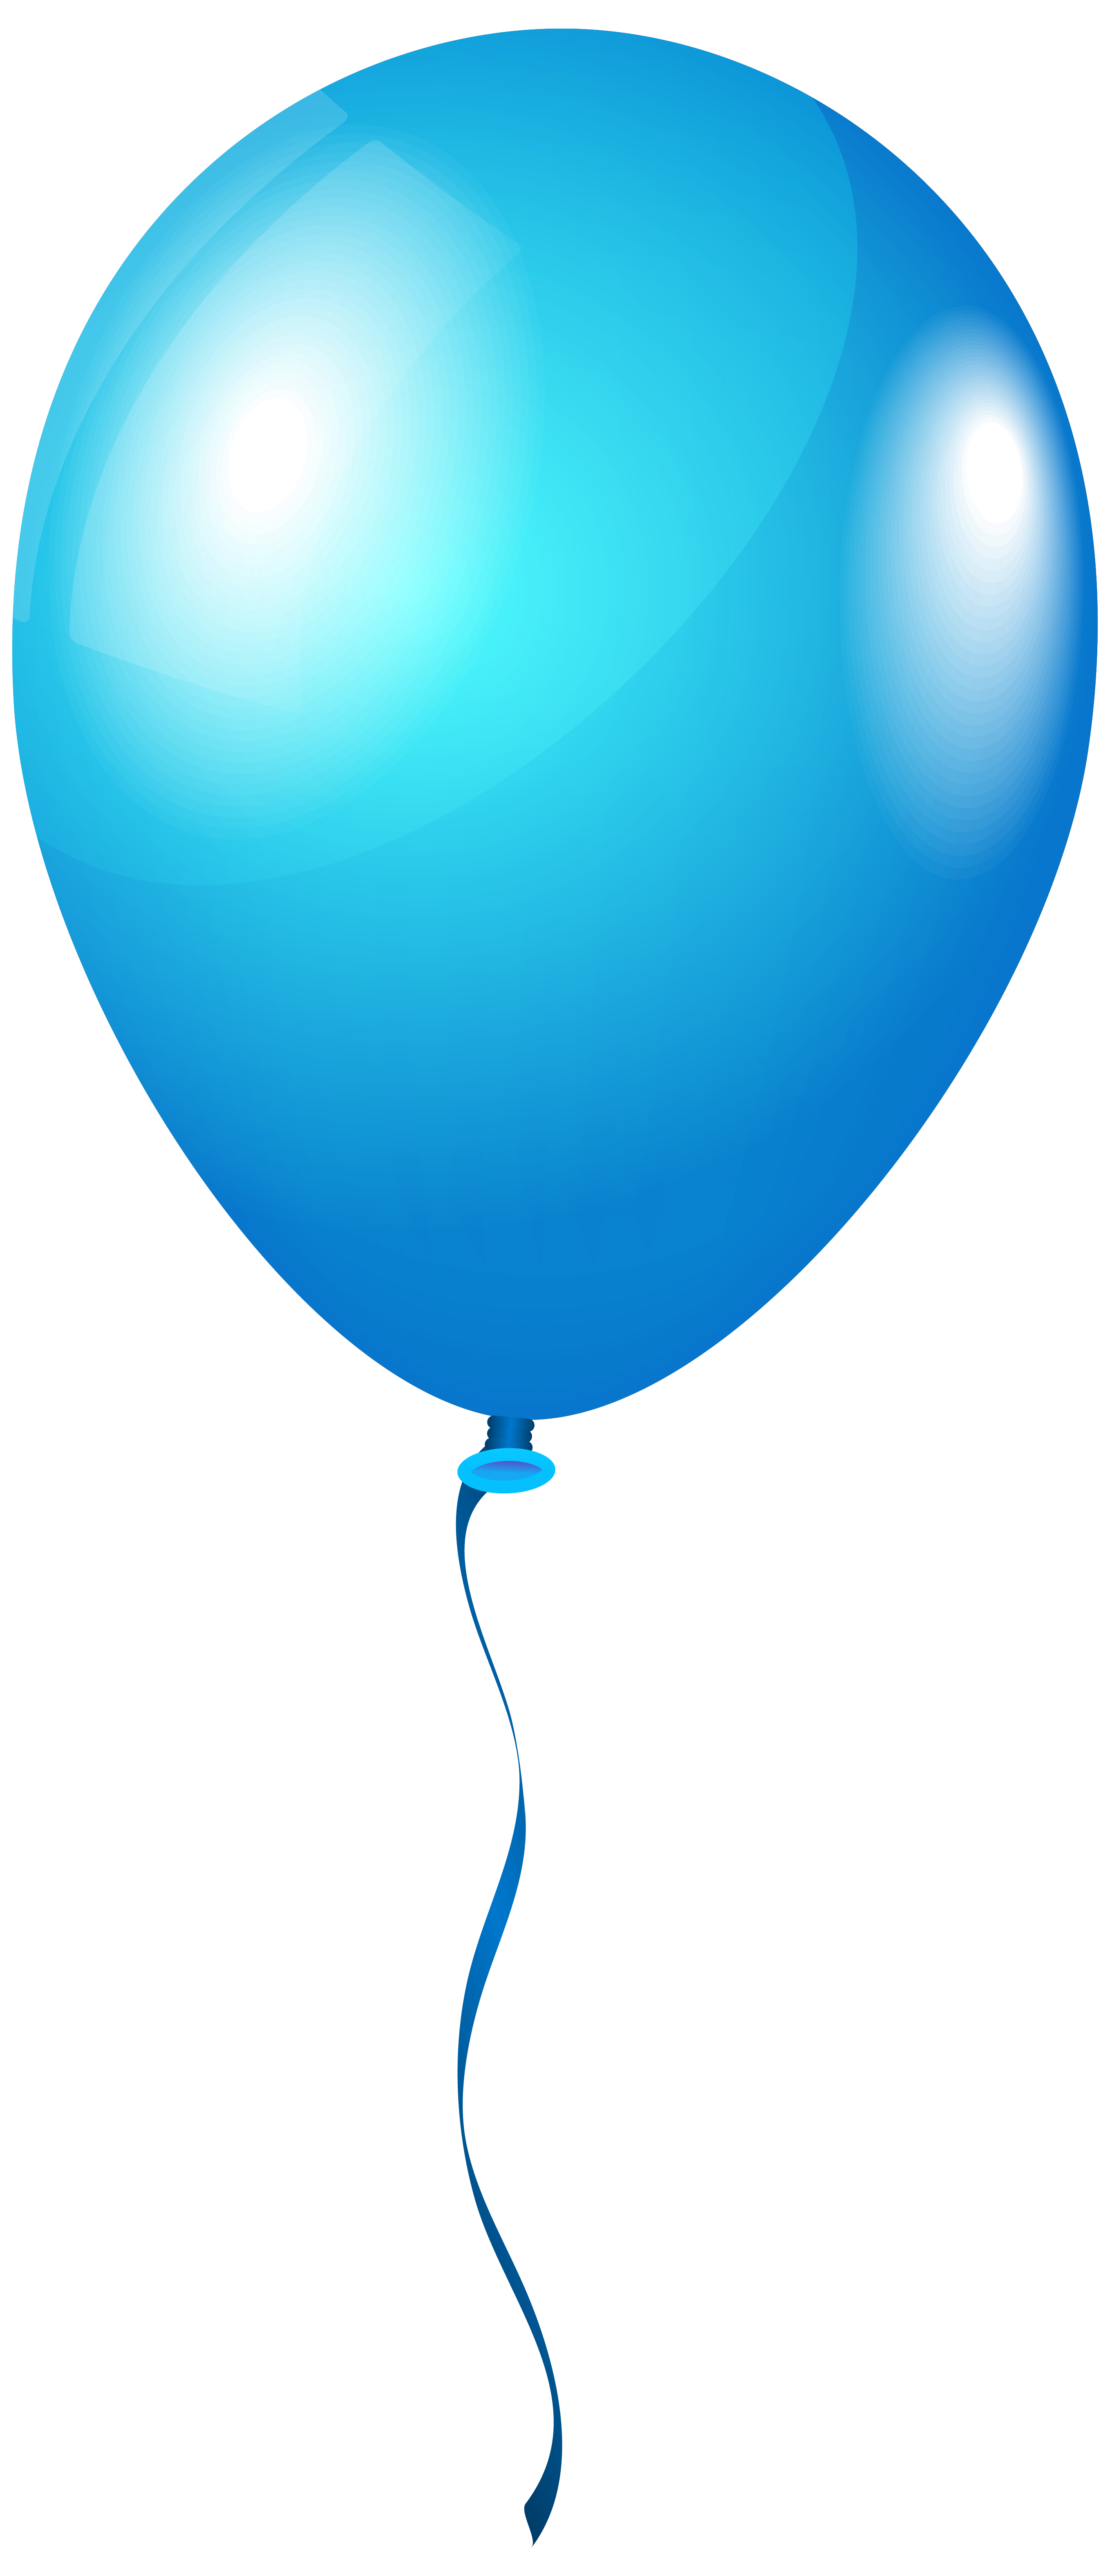 Free pink blue green yellow balloon clipart picture free download Balloon Clipart No Background | Free download best Balloon Clipart ... picture free download